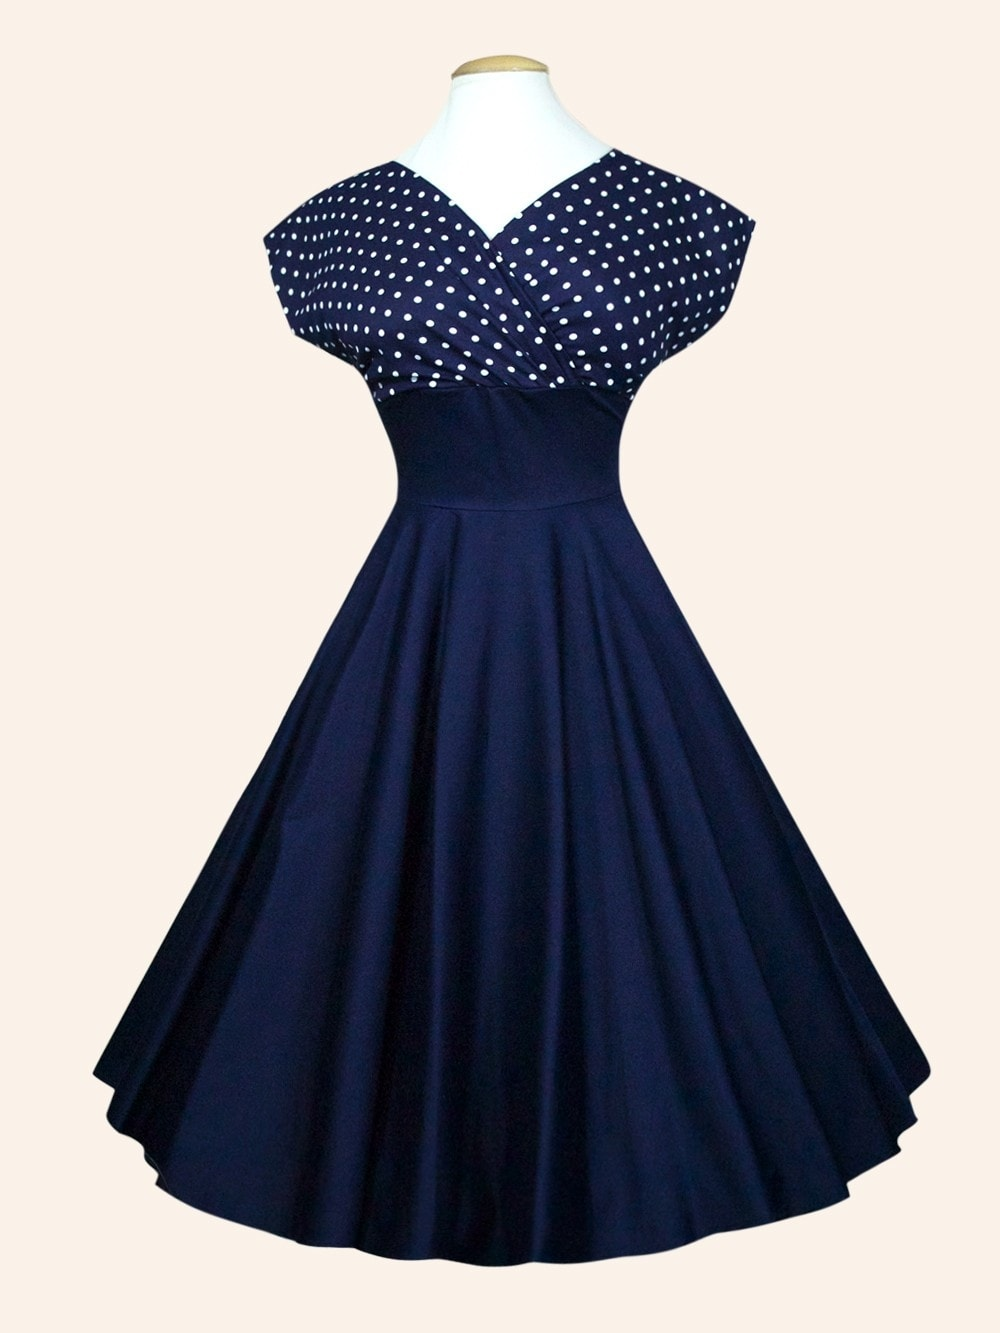 View all dresses view all women view all grace dress